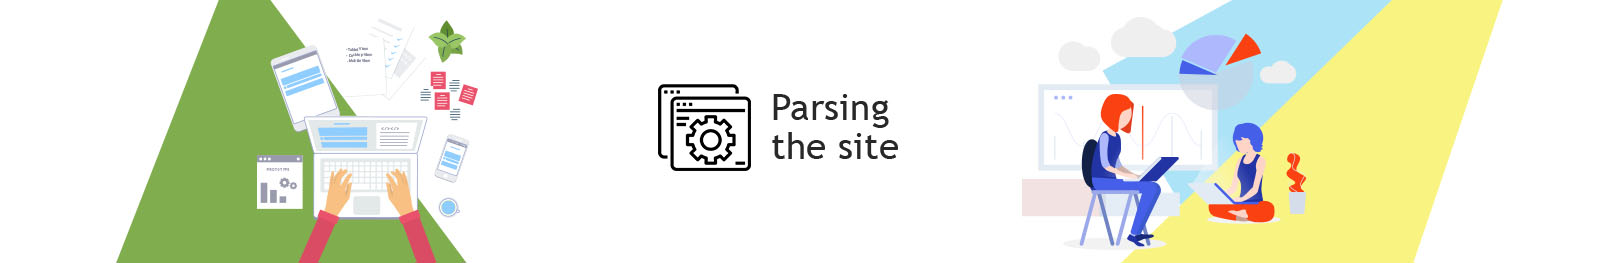 Parsing site for opencart. Parsing goods from the site in excel OpenCart, price, cost.